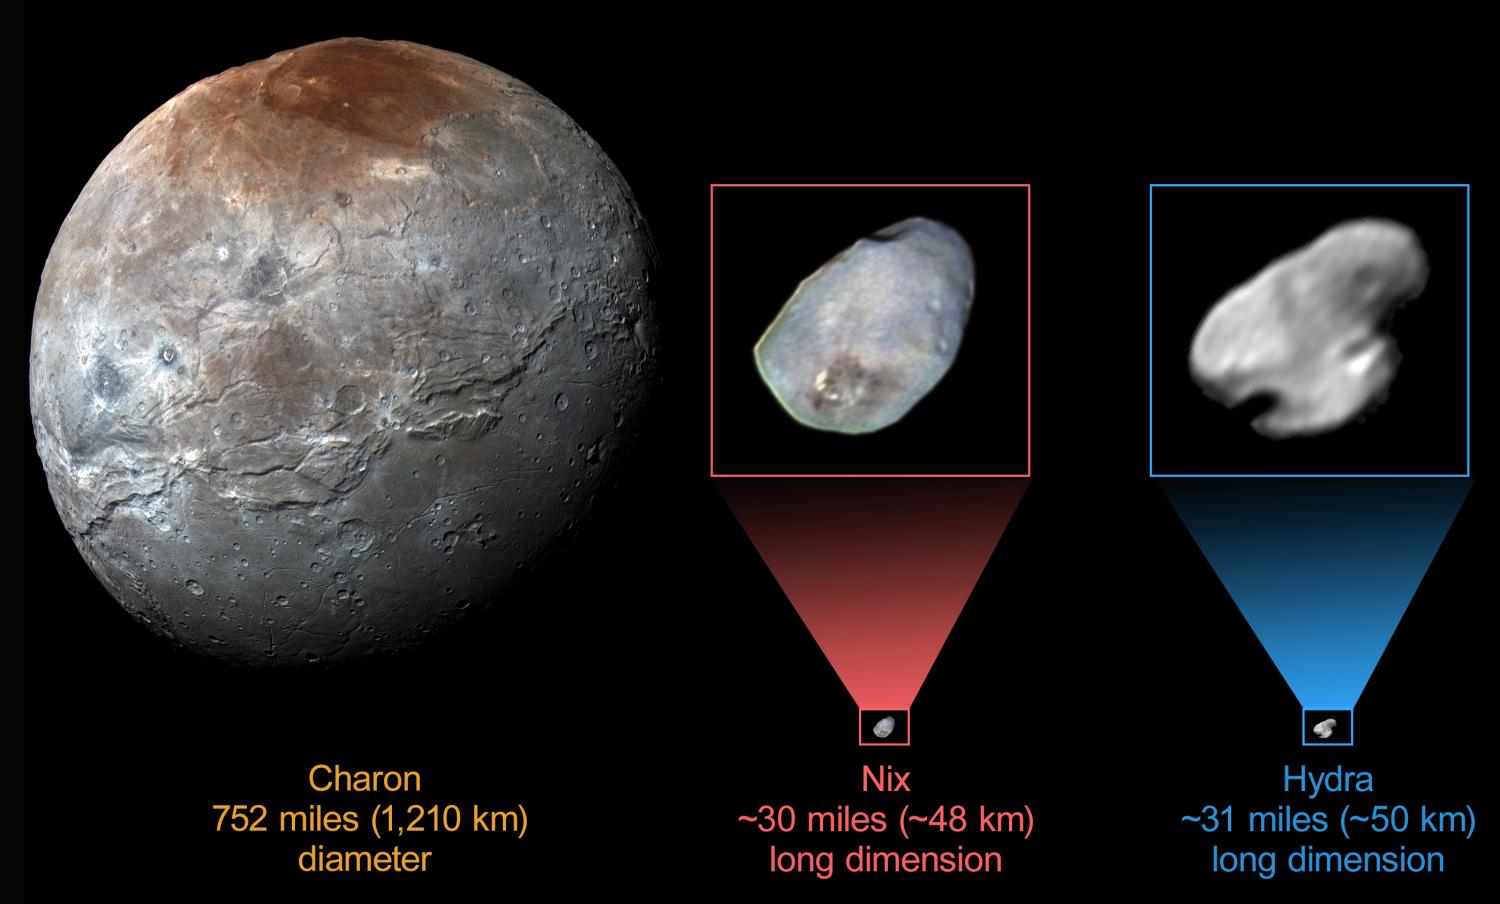 Styx Pluto S Moon: New Data Compare, Contrast Pluto's Icy Moons